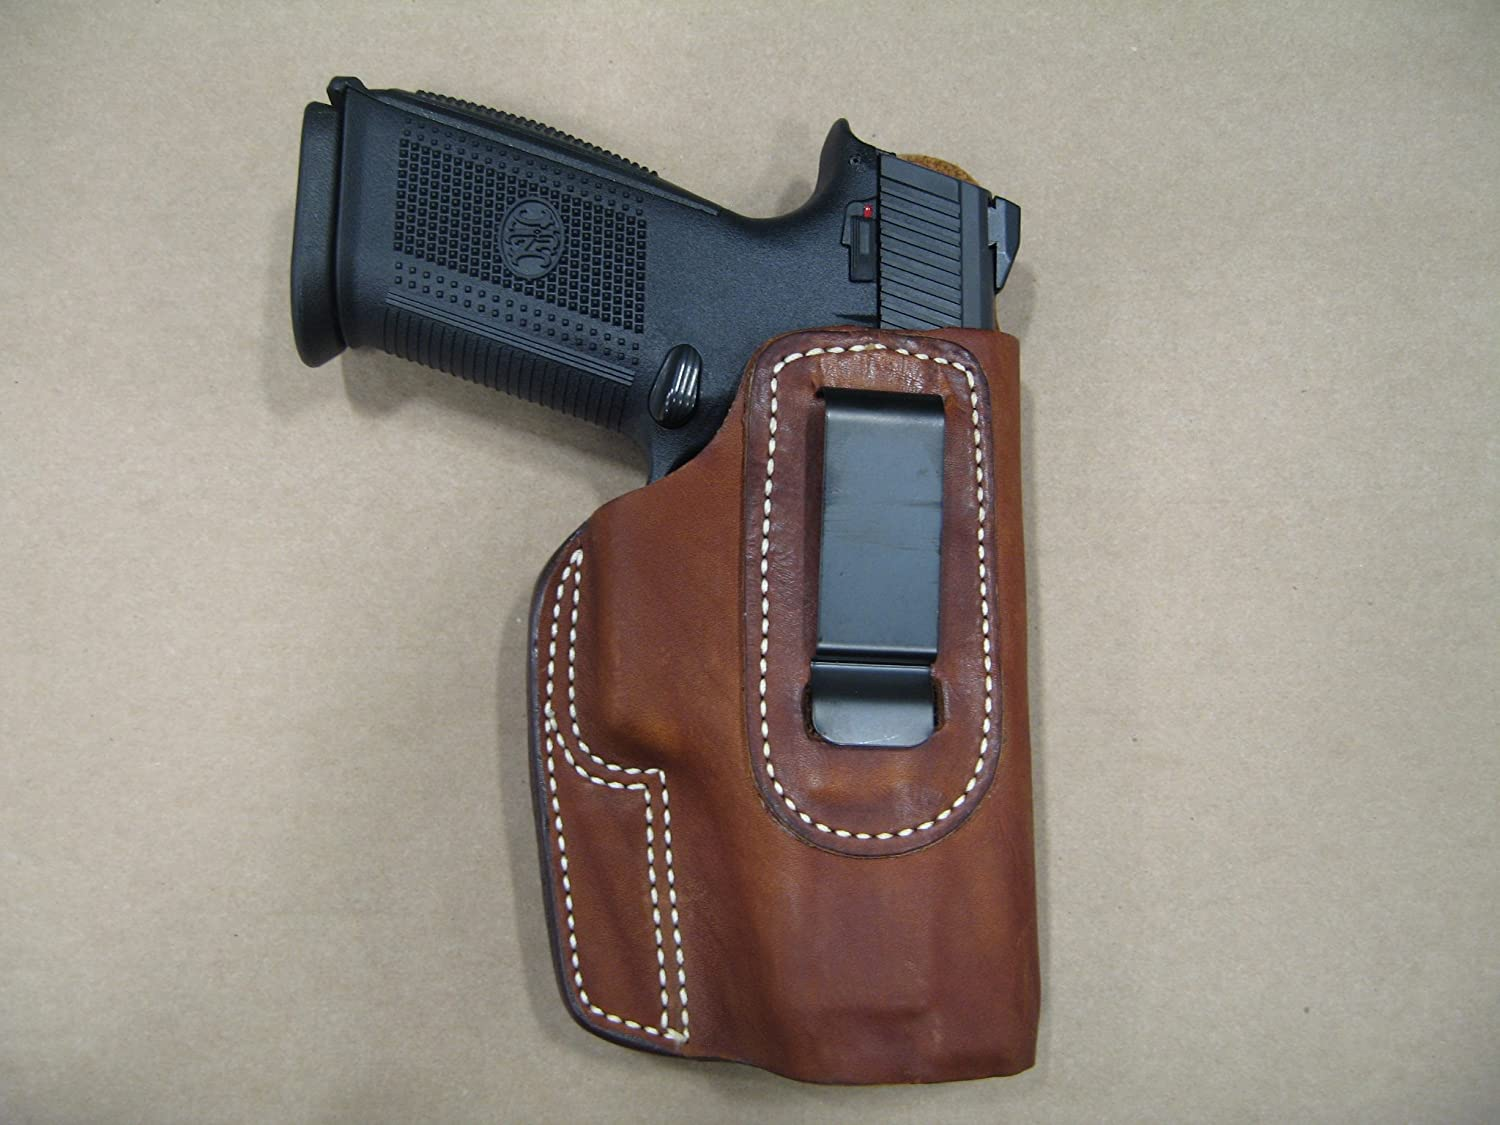 Ruger American Pistol 9mm / 45 IWB Leather In Waistband Concealed Carry  Holster TAN RH